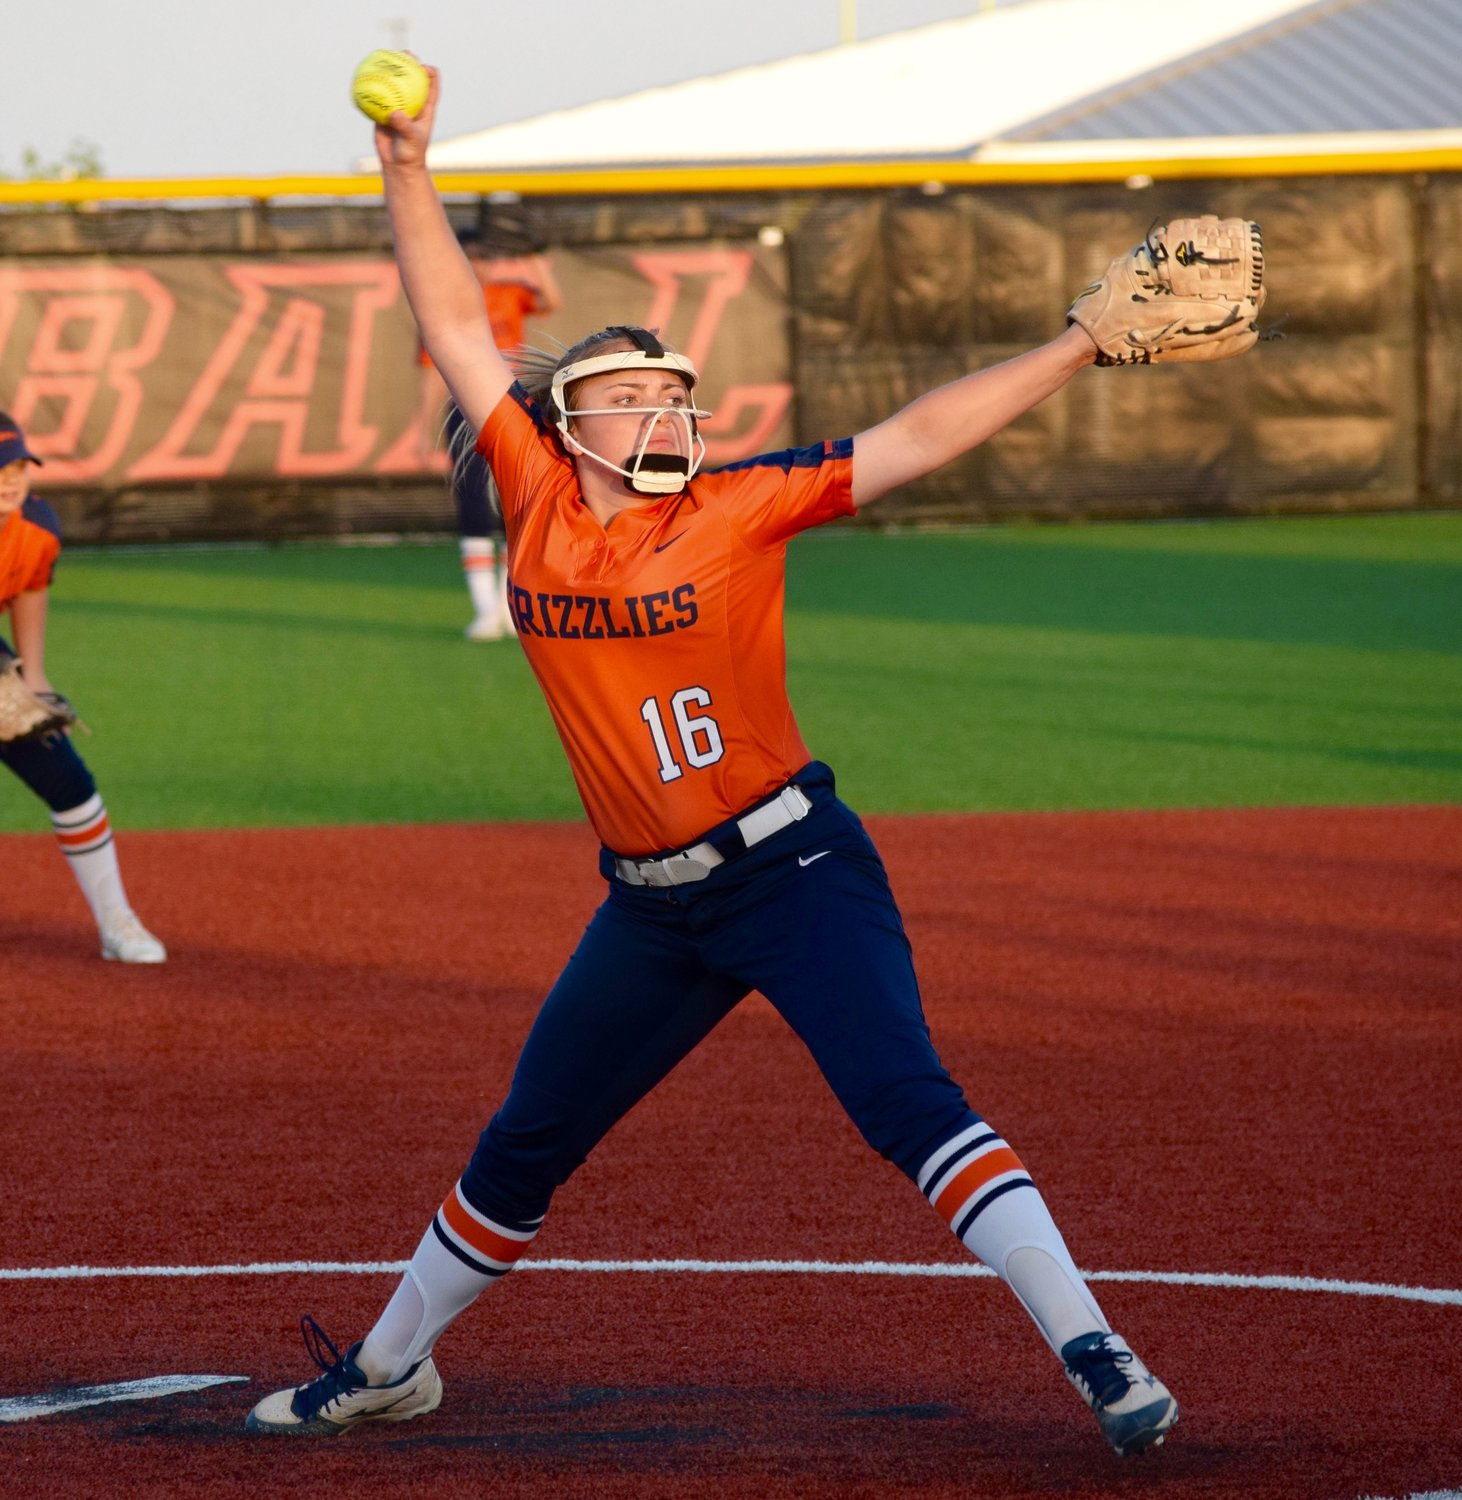 Freshman pitcher Rileigh Harris had 10 strikeouts to help Glenn beat Weiss 5-0 last Tuesday night. In their first year in Class 5A, the Grizzlies are in a position to make the playoffs for the second straight year.